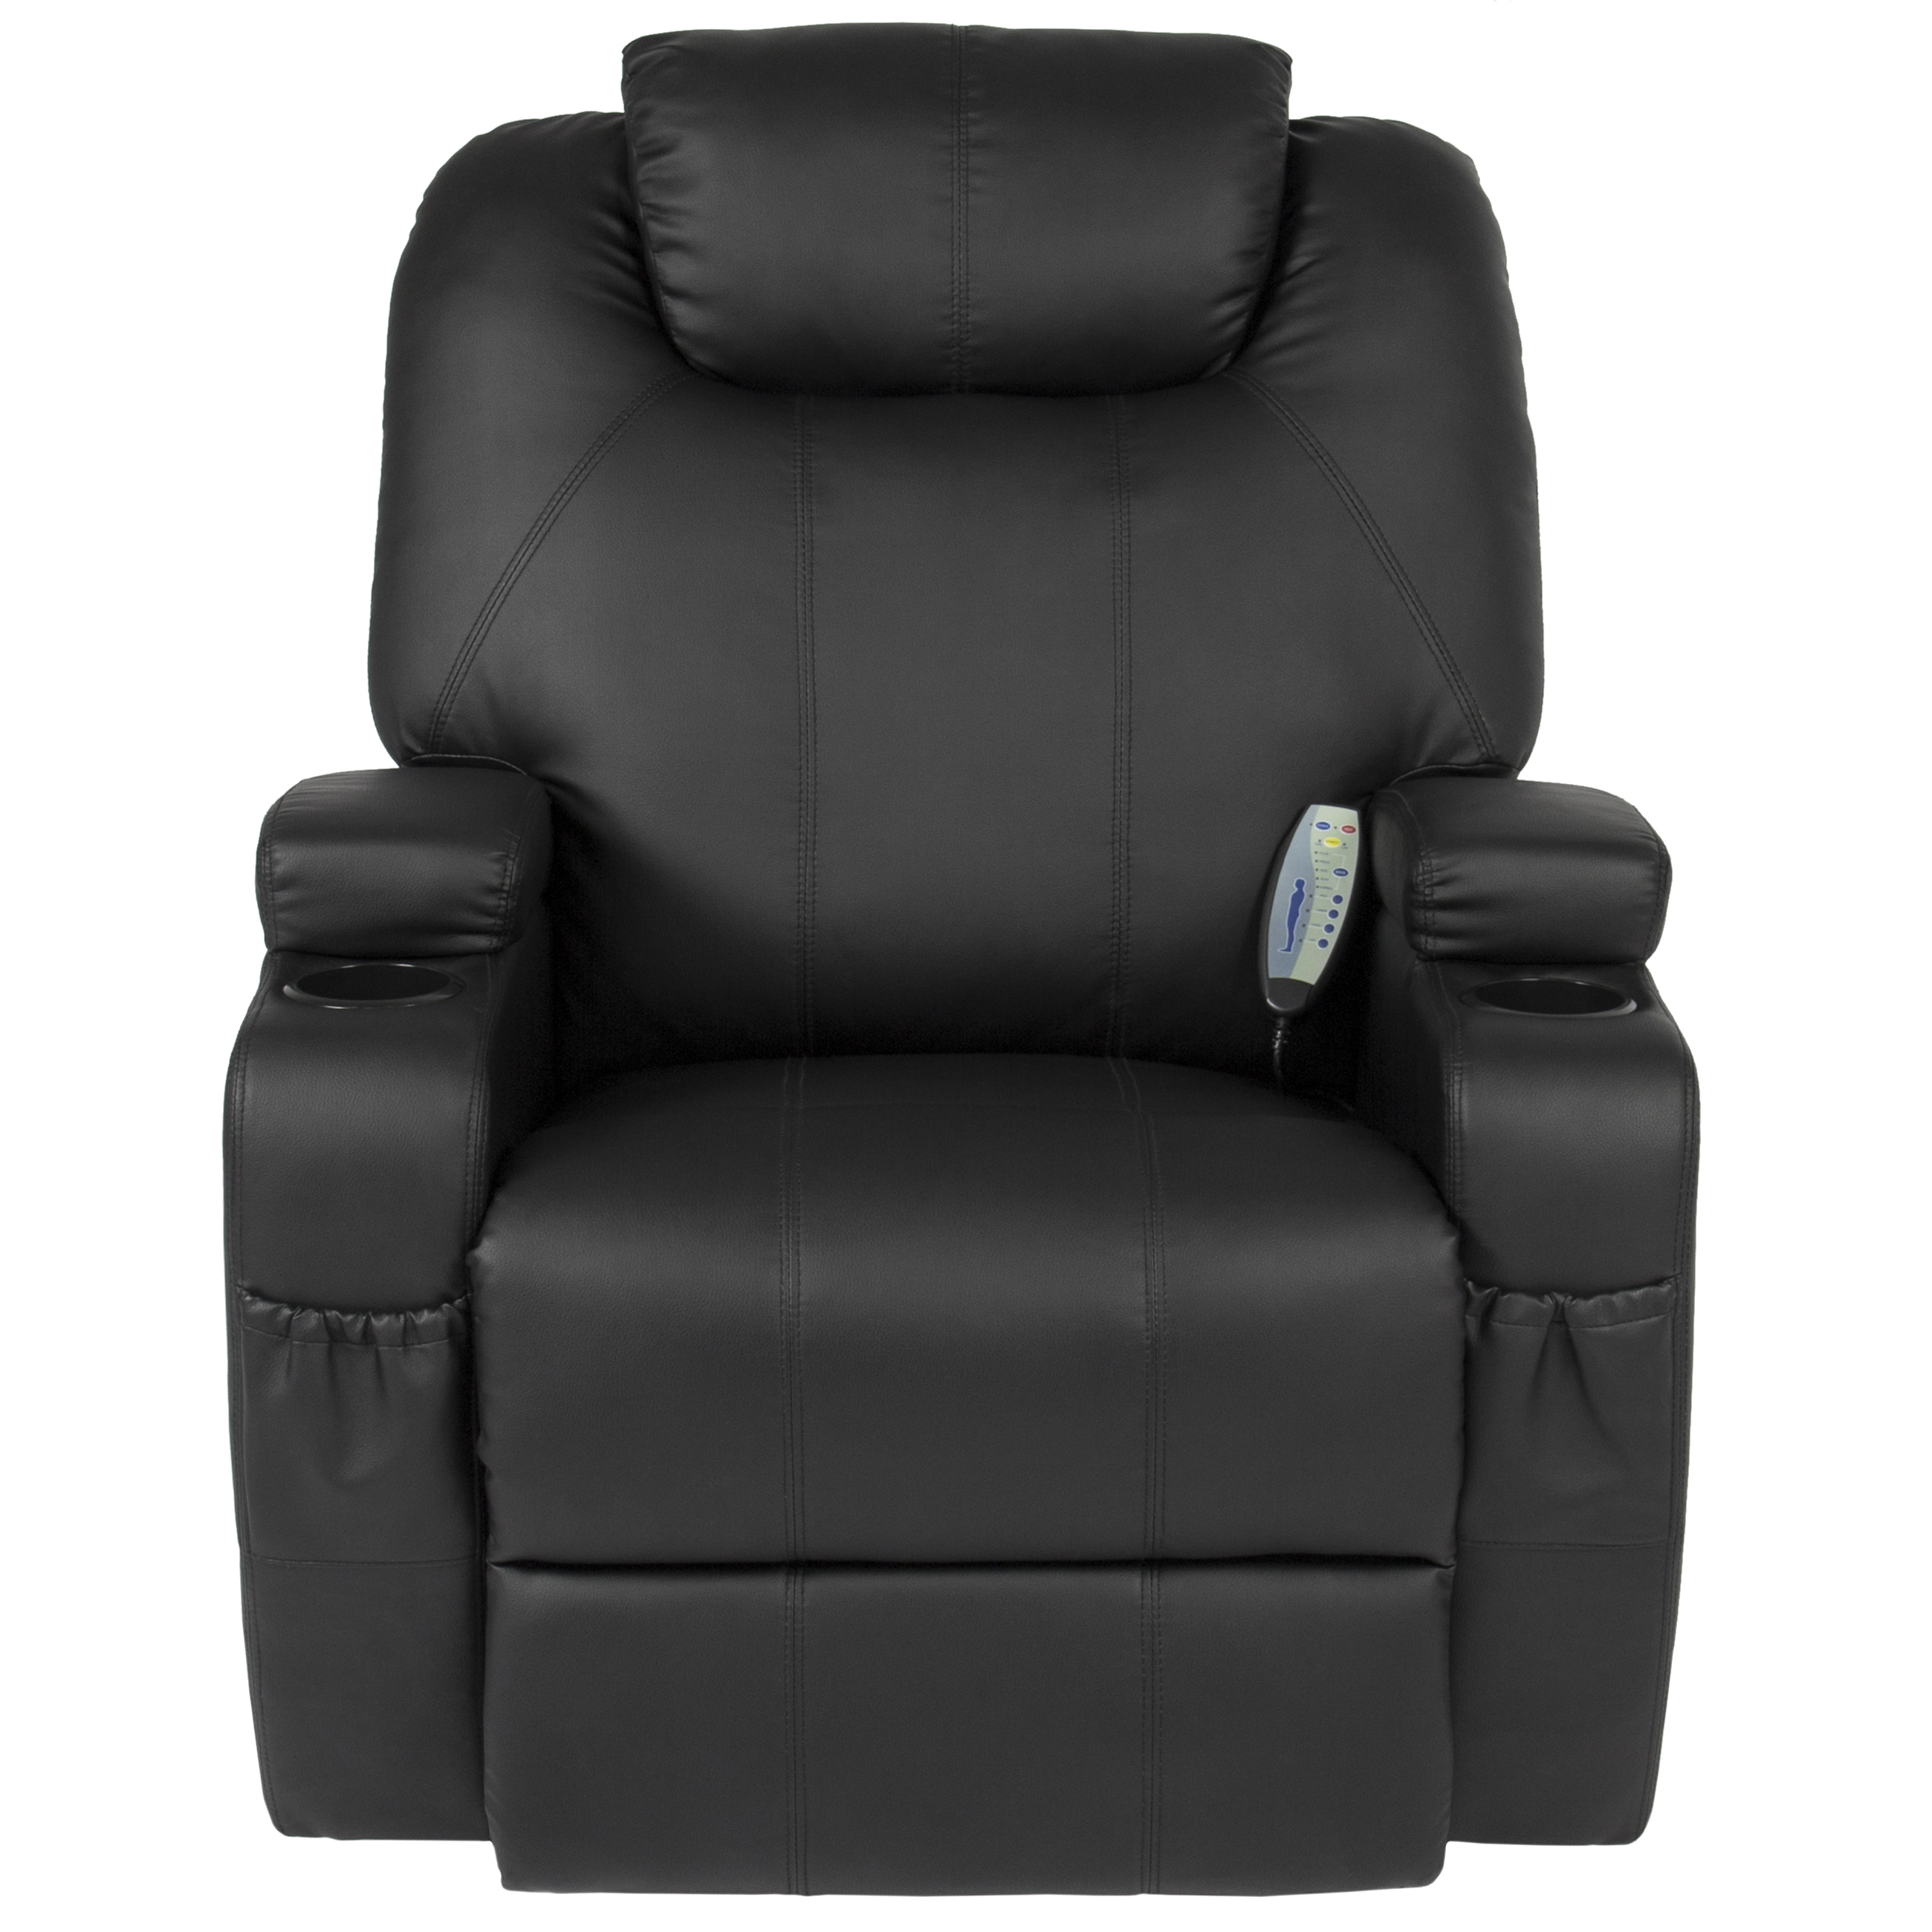 Recliner sofa parts perfect heated recliner recliner for Chair massage dc